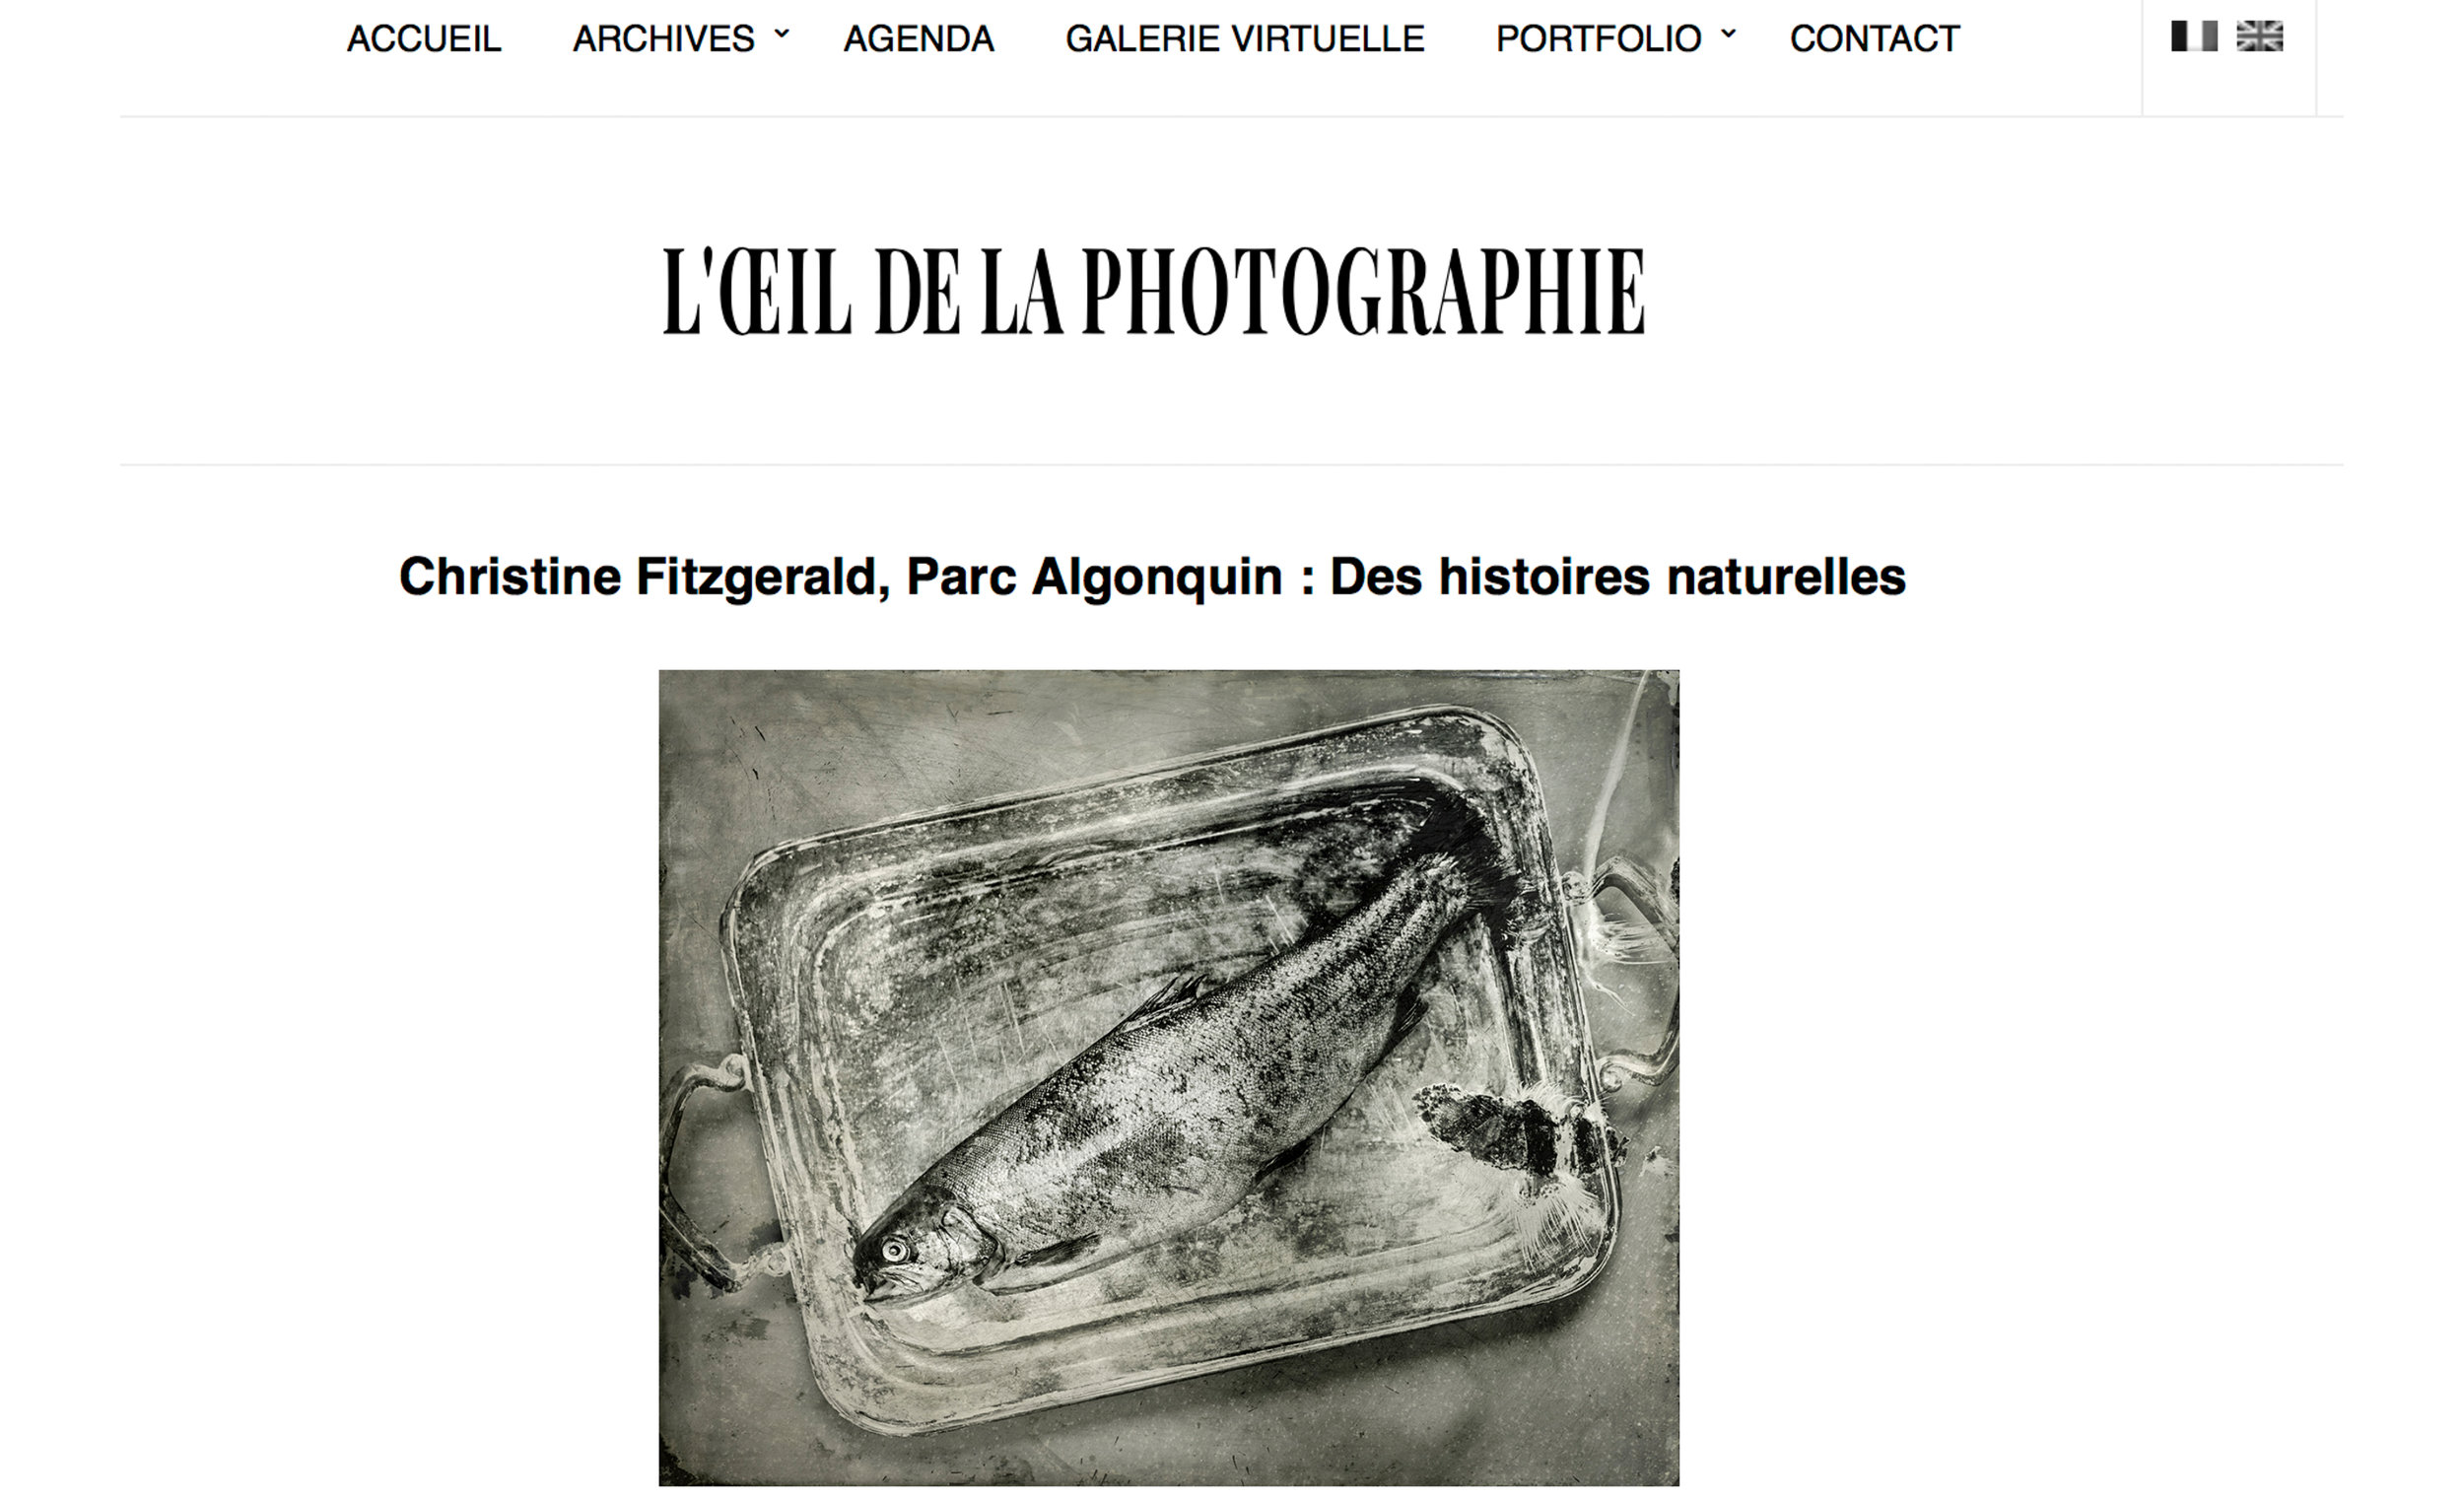 L'Oeil de la photographie, August 19, 2017 issue.